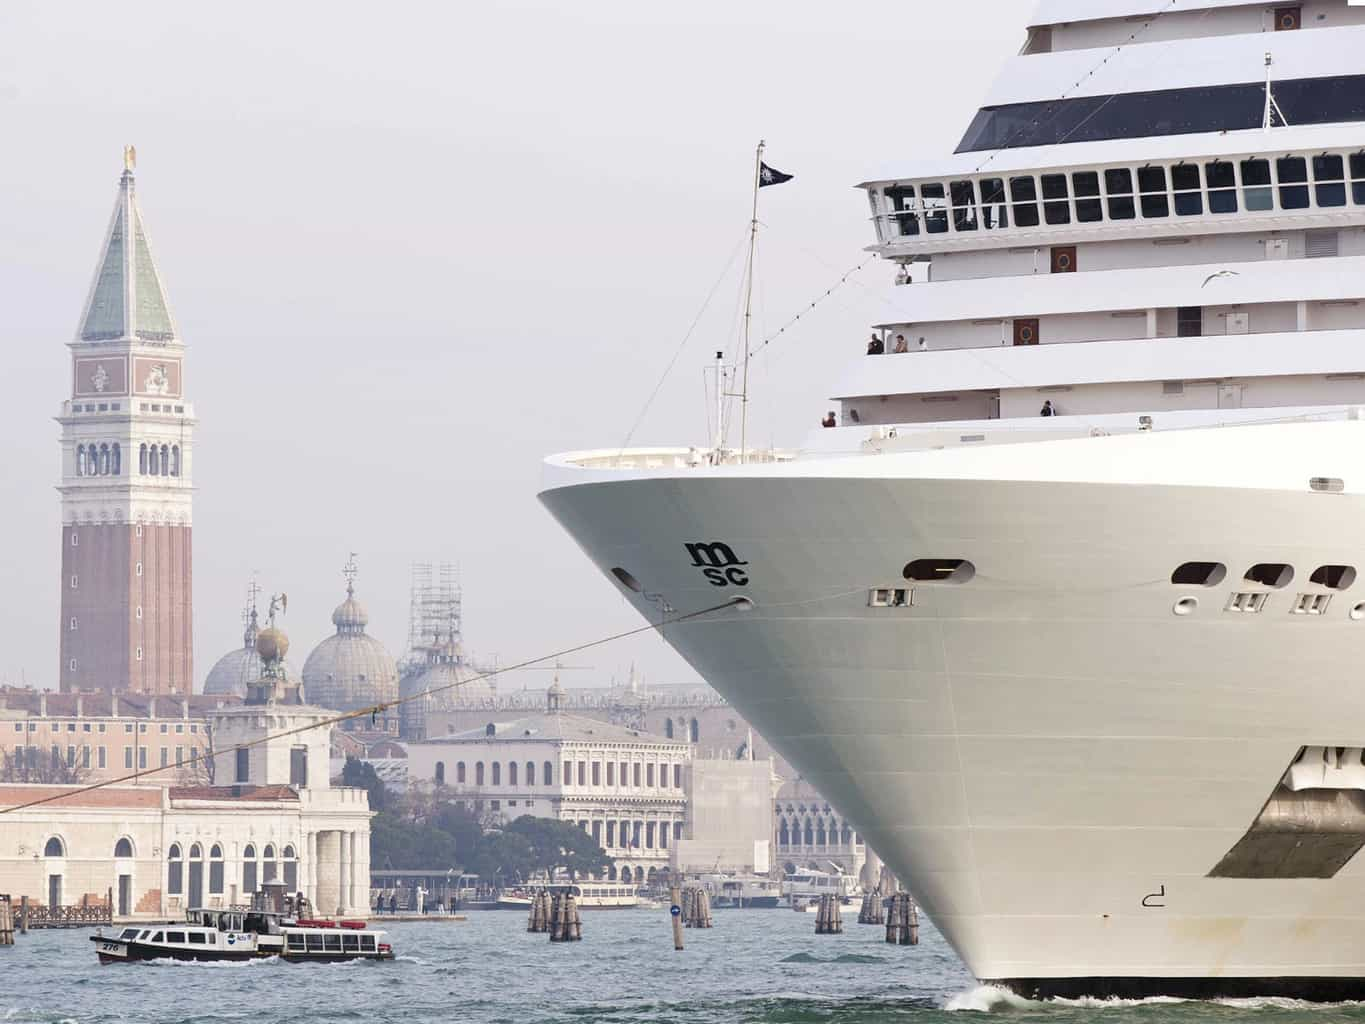 Cruise ships are destroying Venice with their wakes